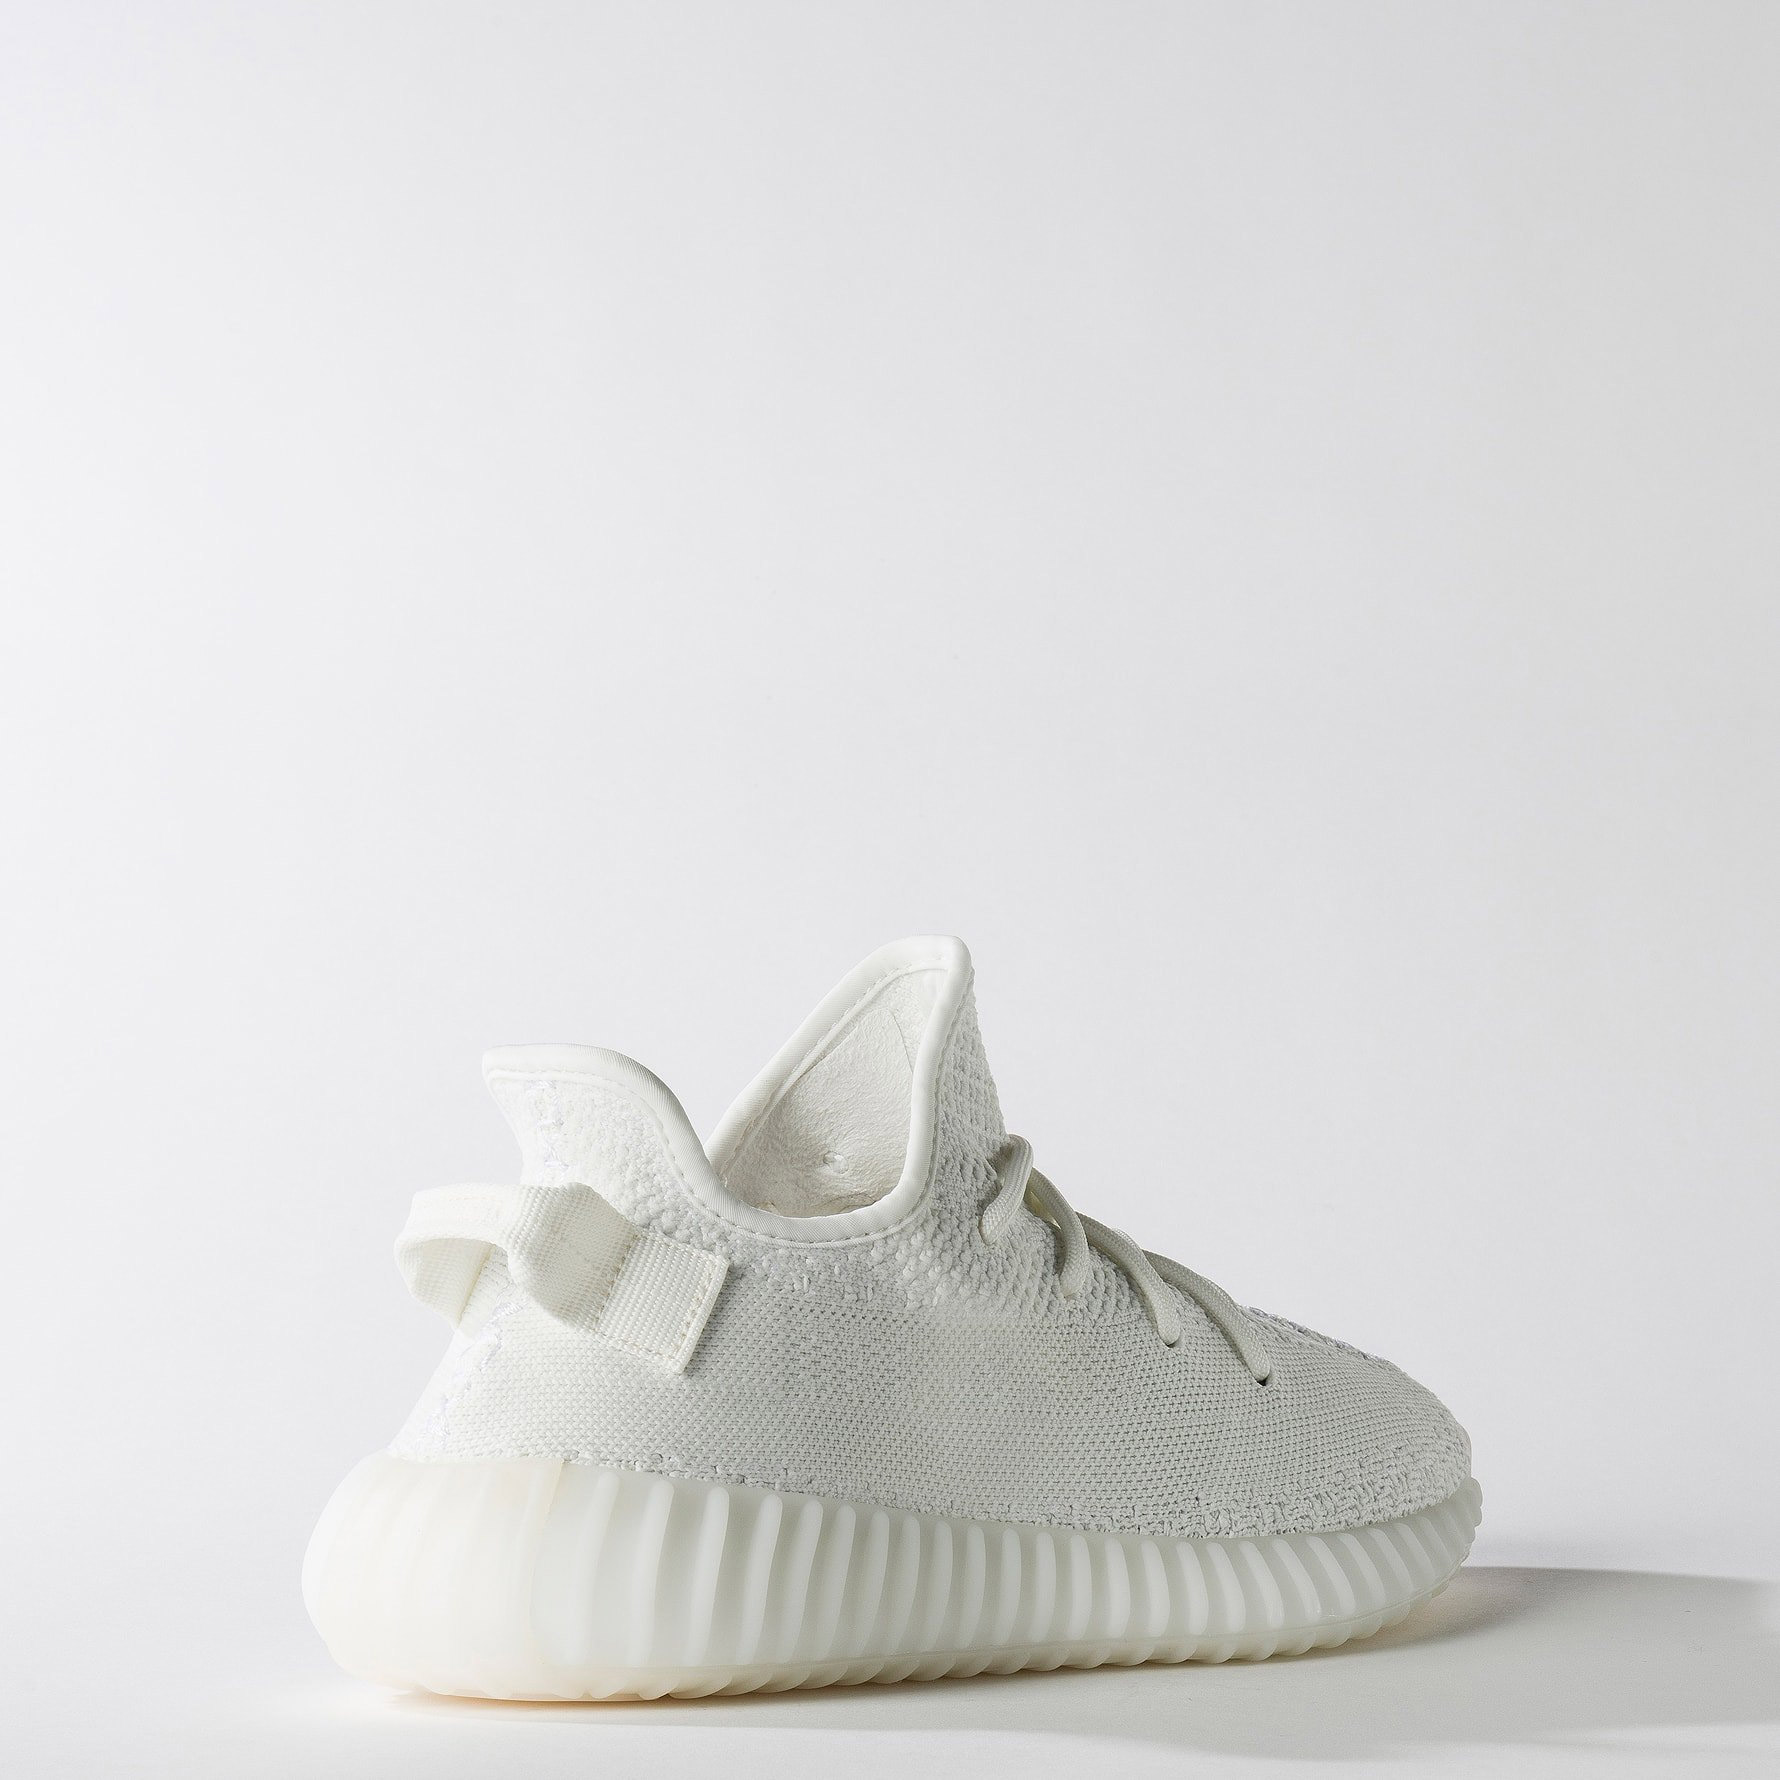 adidas Yeezy Boost 350 V2 Cream White CP9366 2